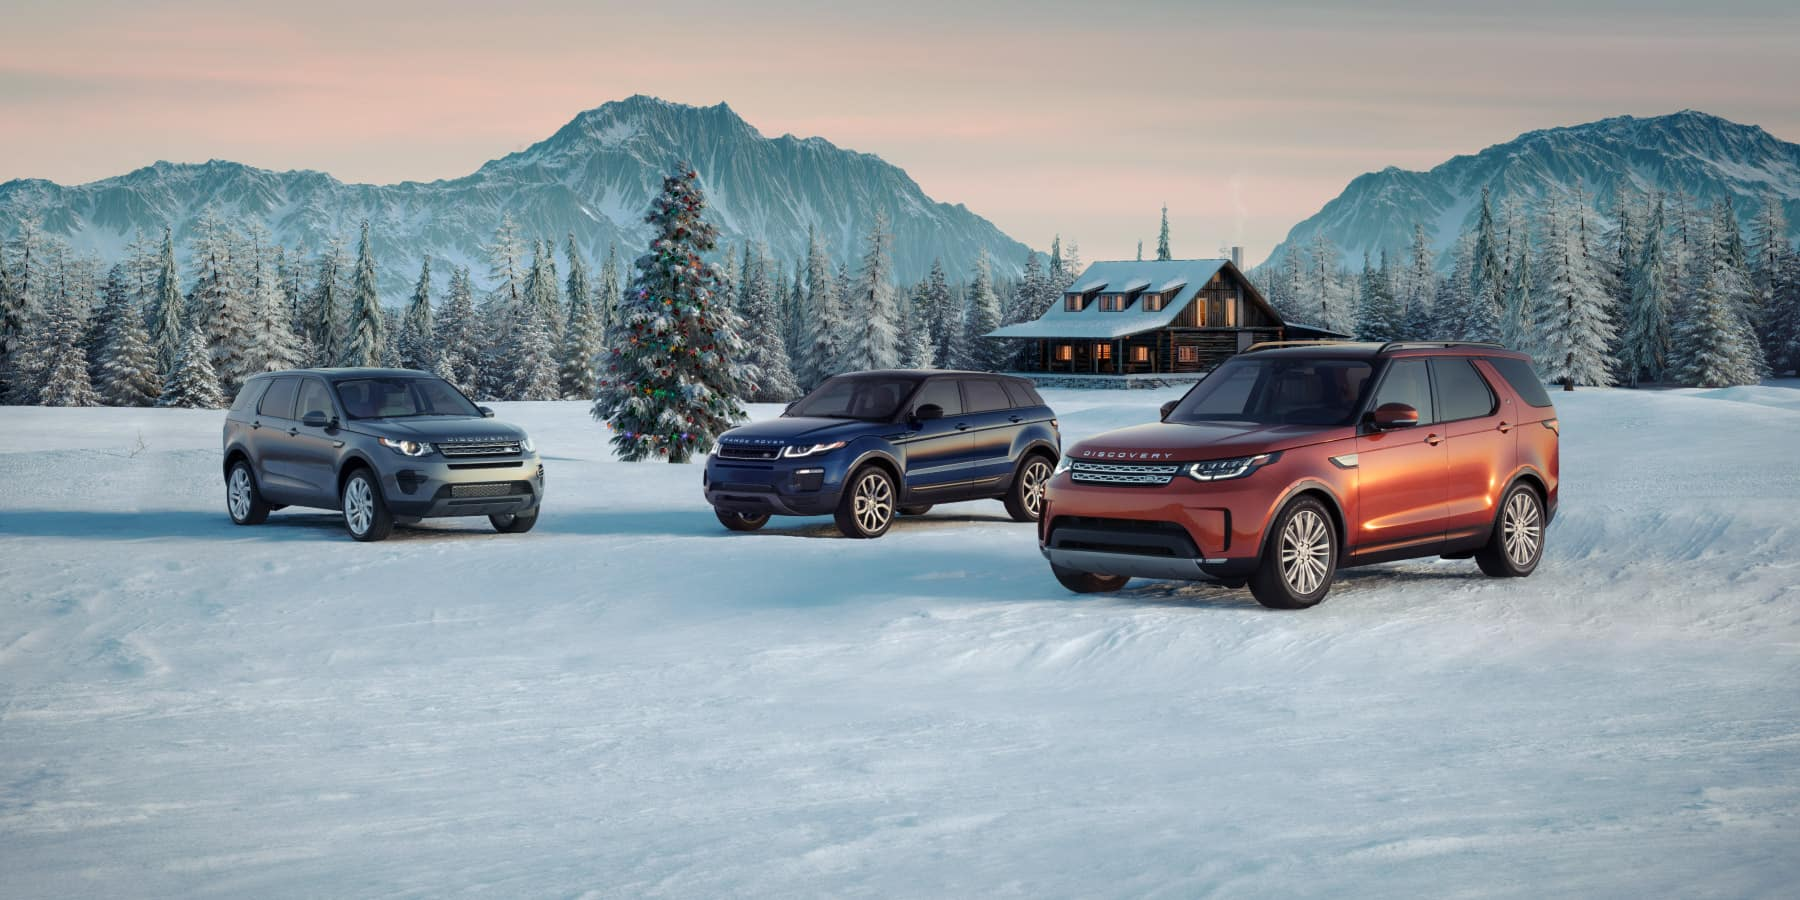 Land Rover Fort Worth | Season of Adventure Sales Event